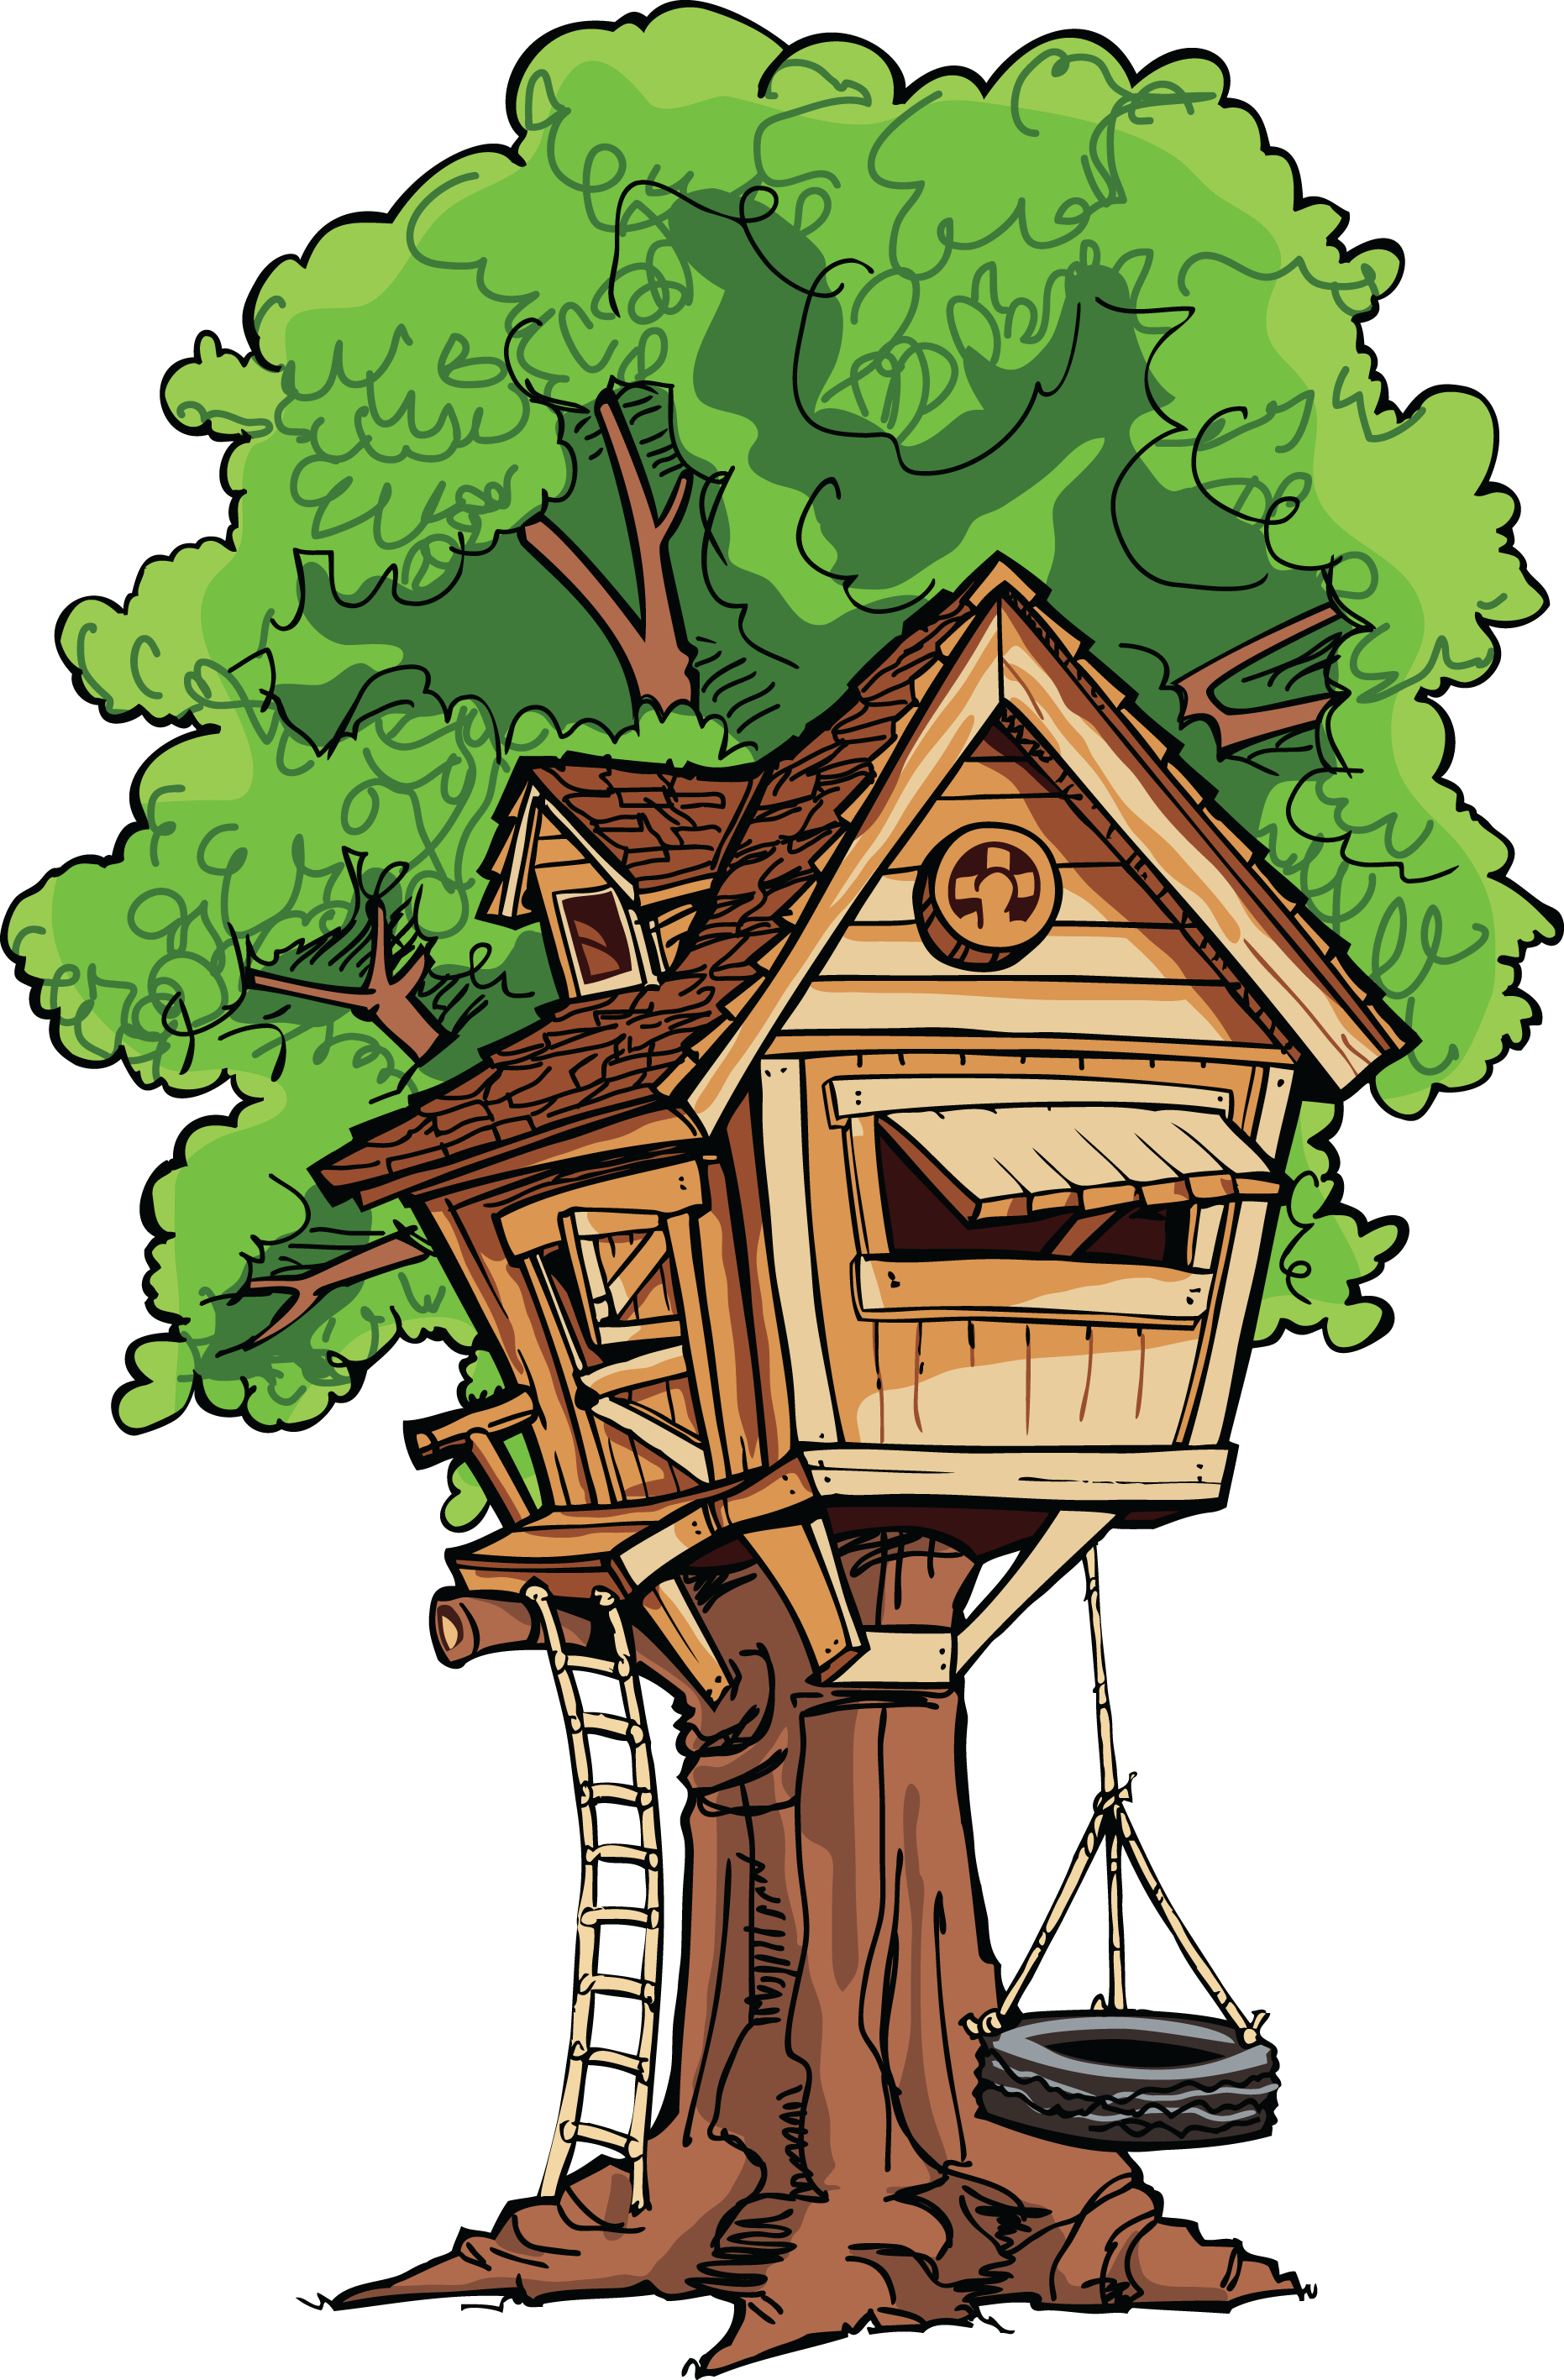 Tree house clip art. Clipart castle ireland